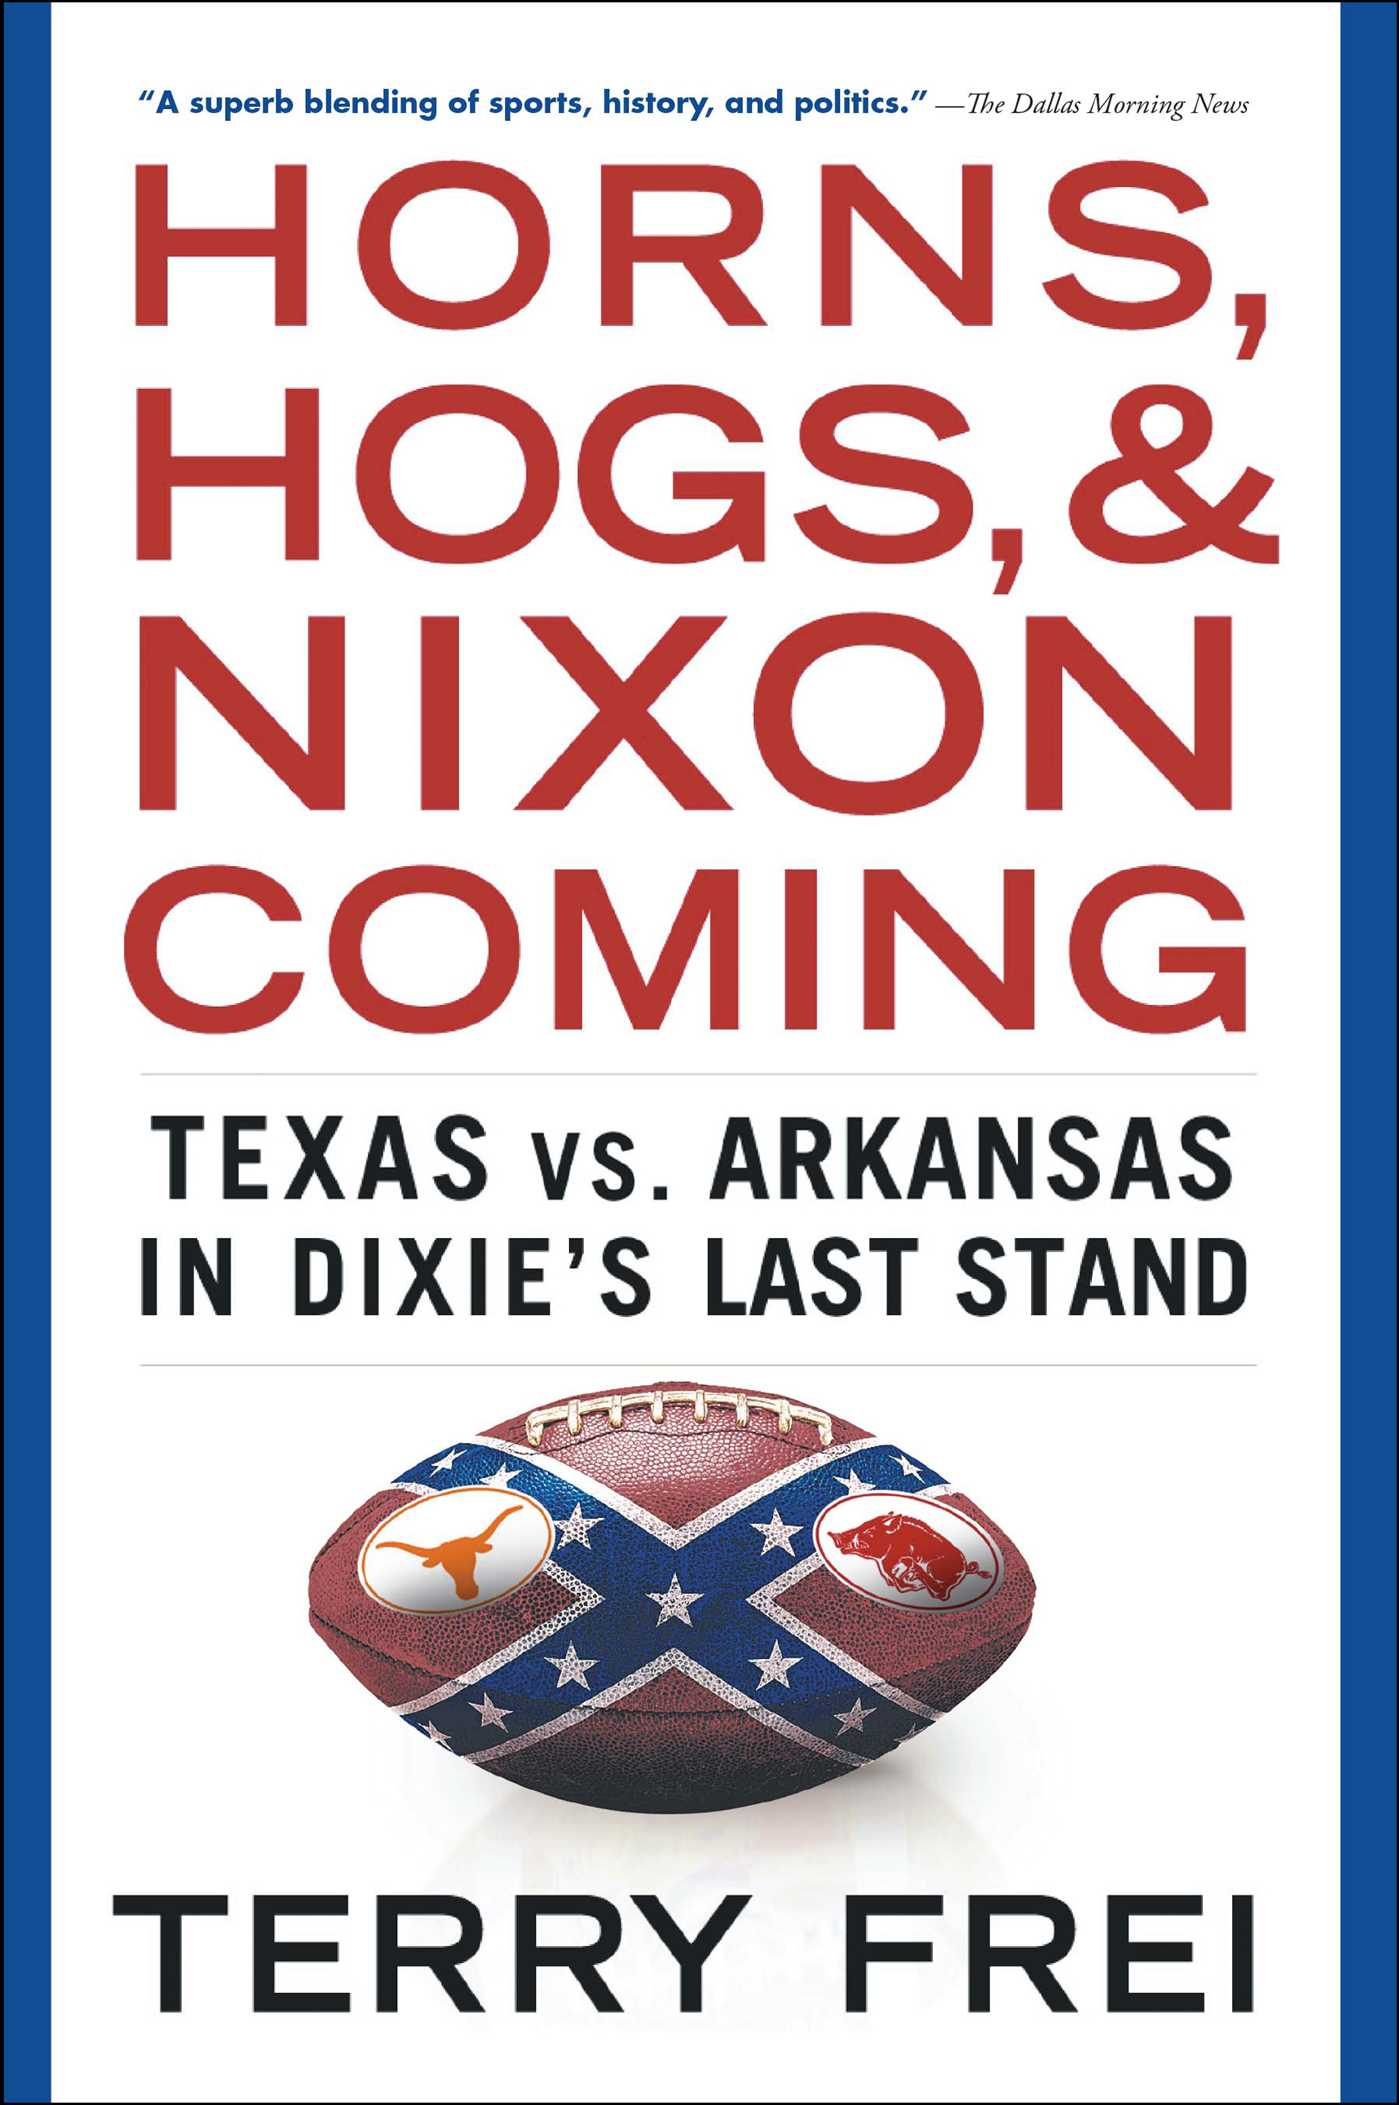 Horns hogs and nixon coming 9780743238656 hr